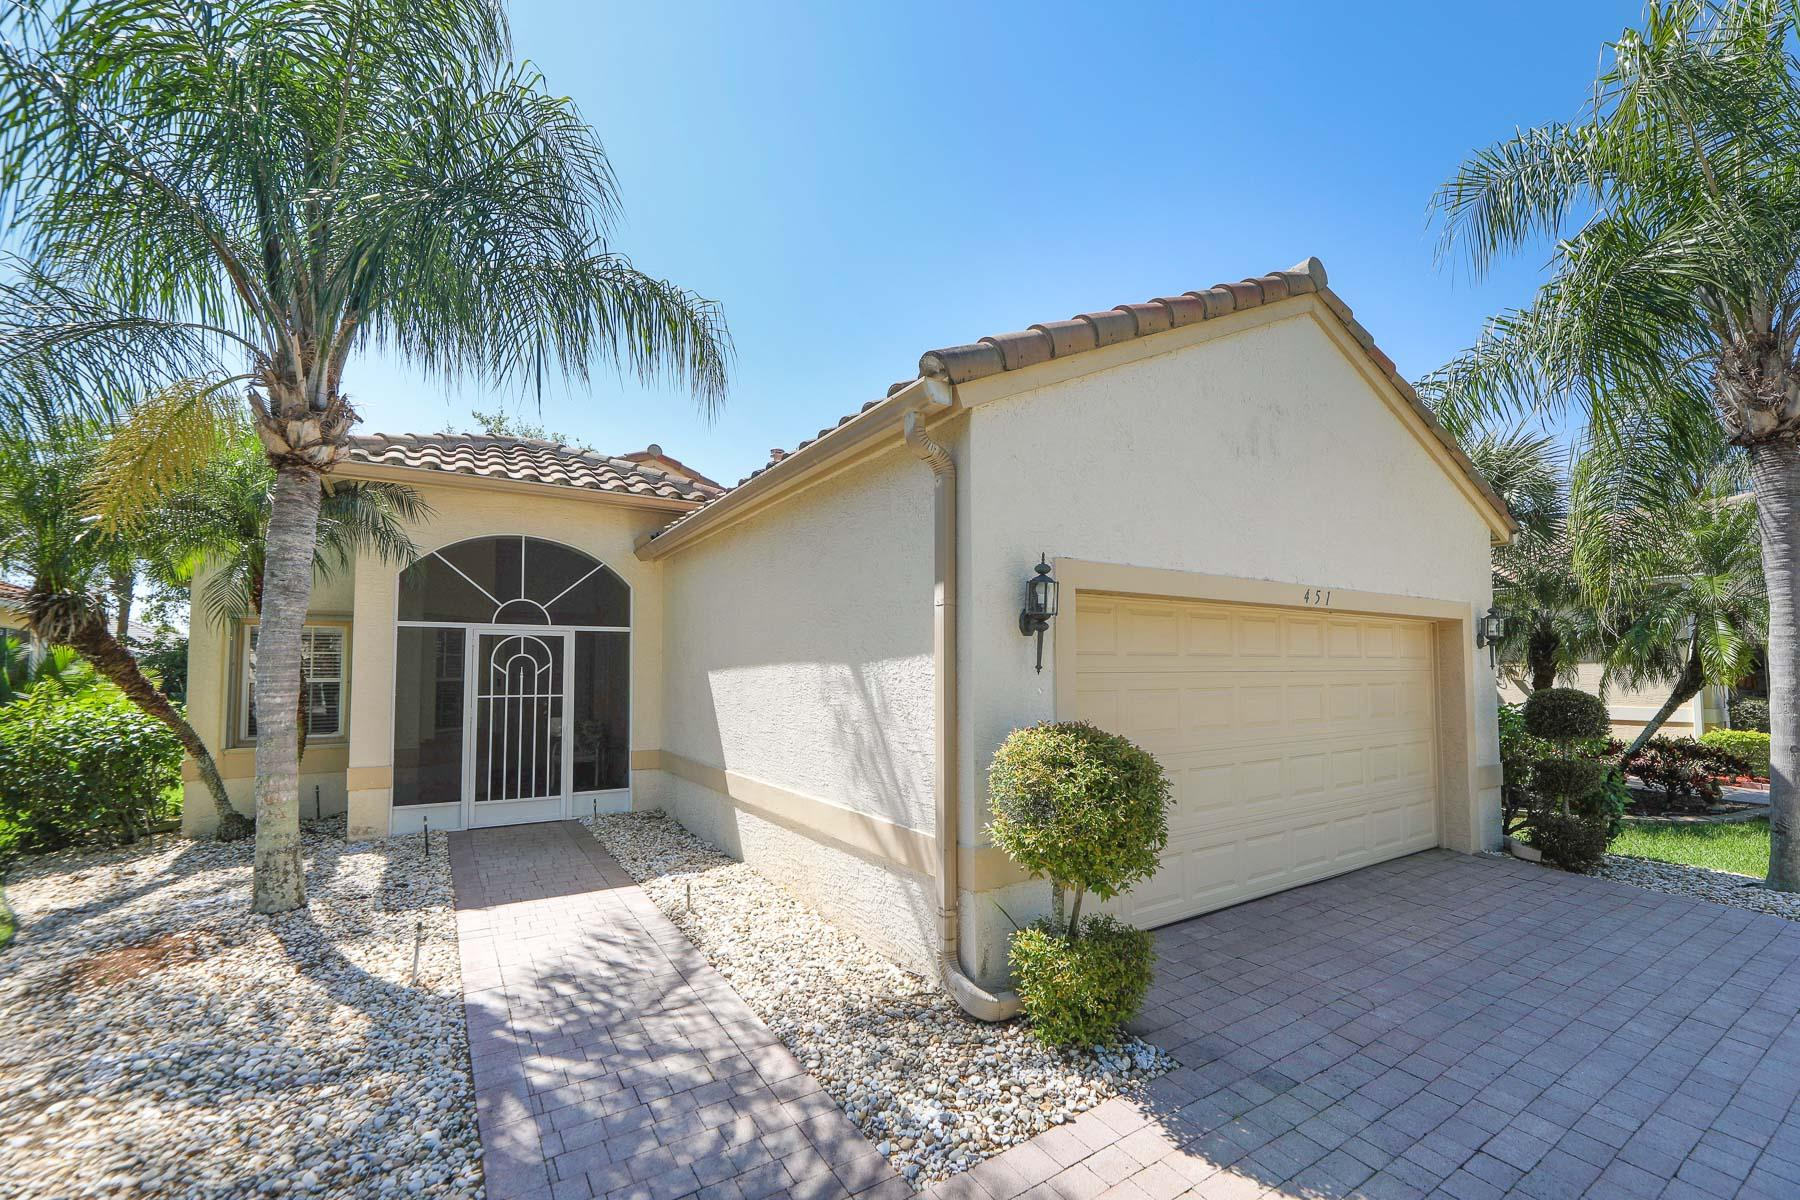 451 Nw Lismore Lane, Port Saint Lucie, FL 34986